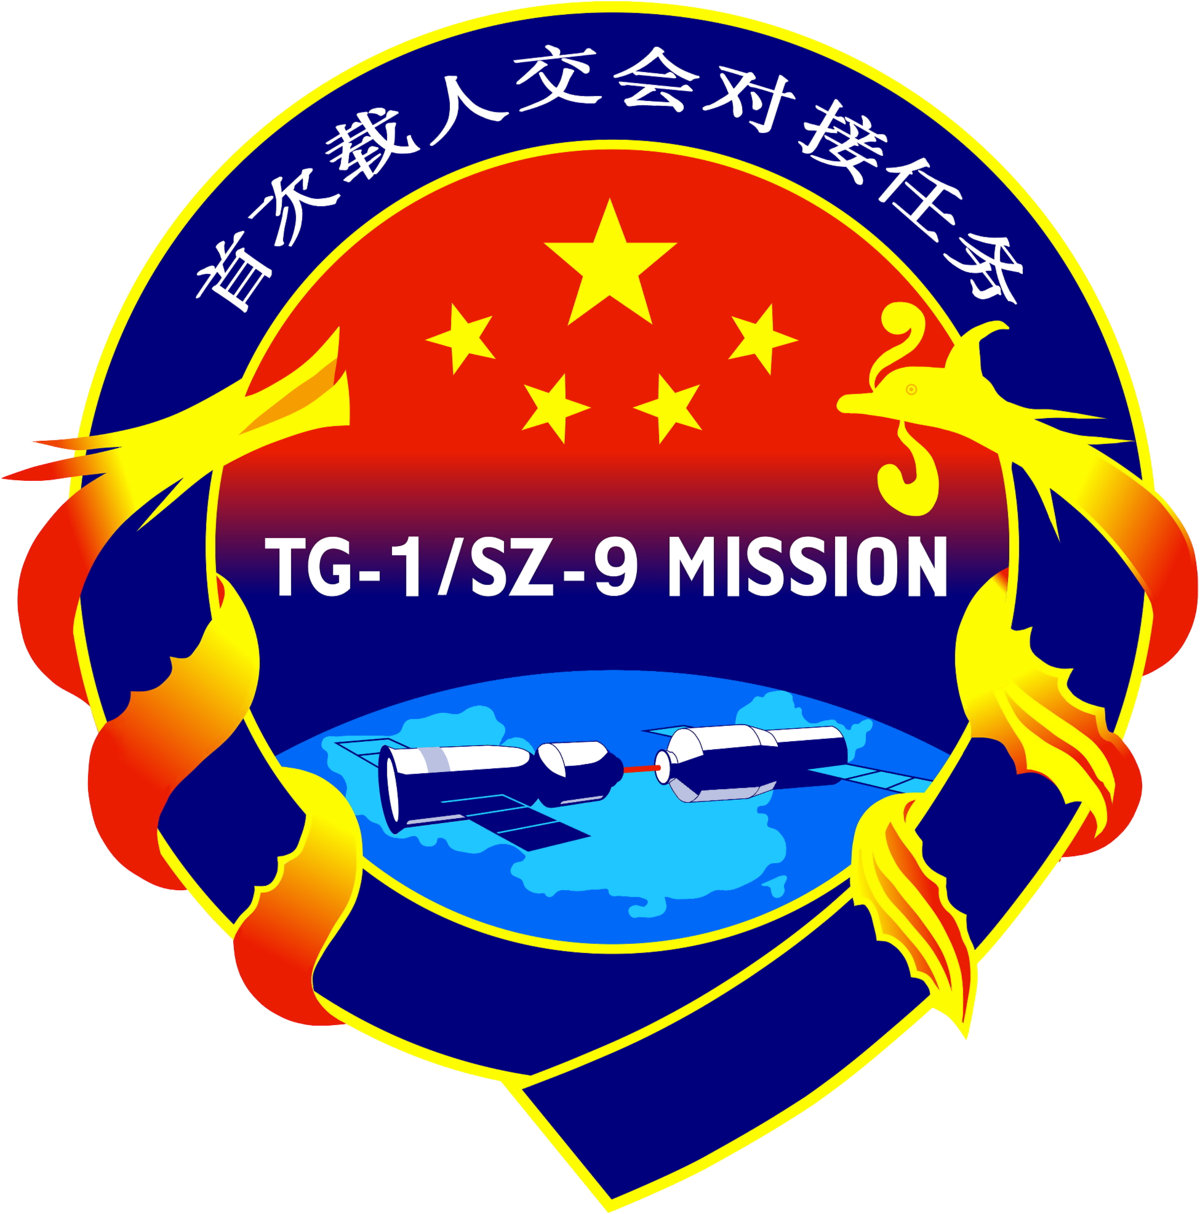 Space program wikipedia . Respect clipart man chinese